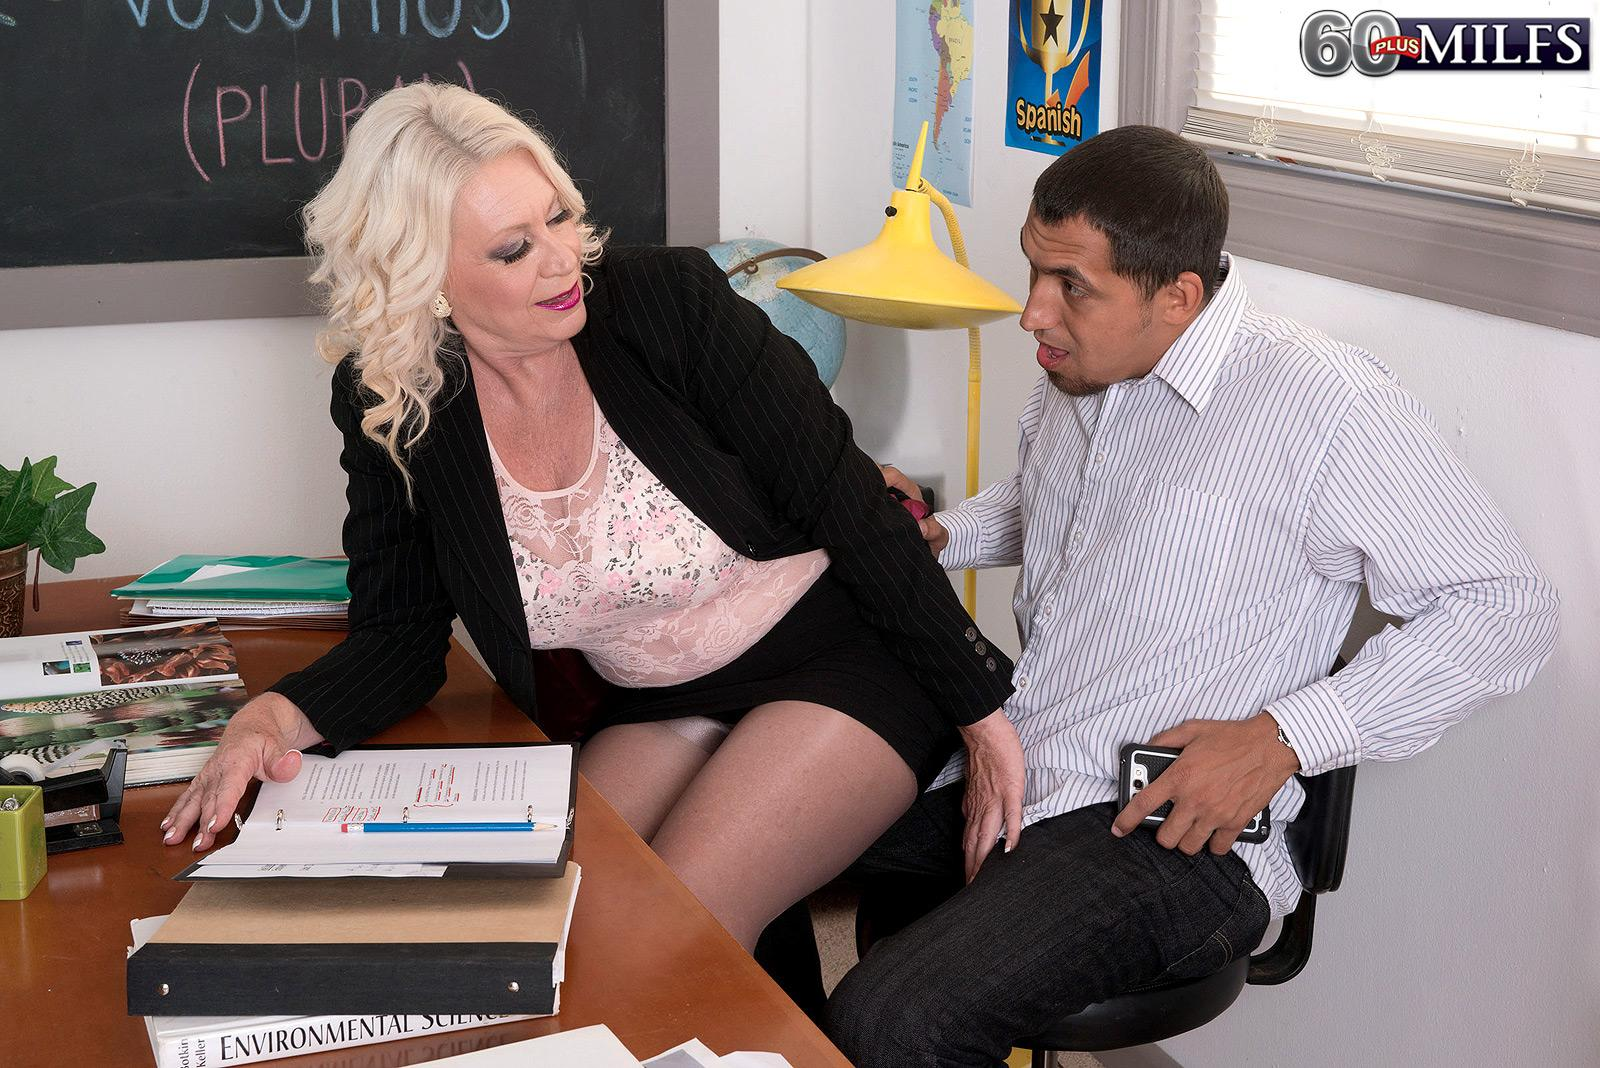 Big-titted golden-haired 60 plus MILF instructor Angelique DuBois tugging large dick in classroom